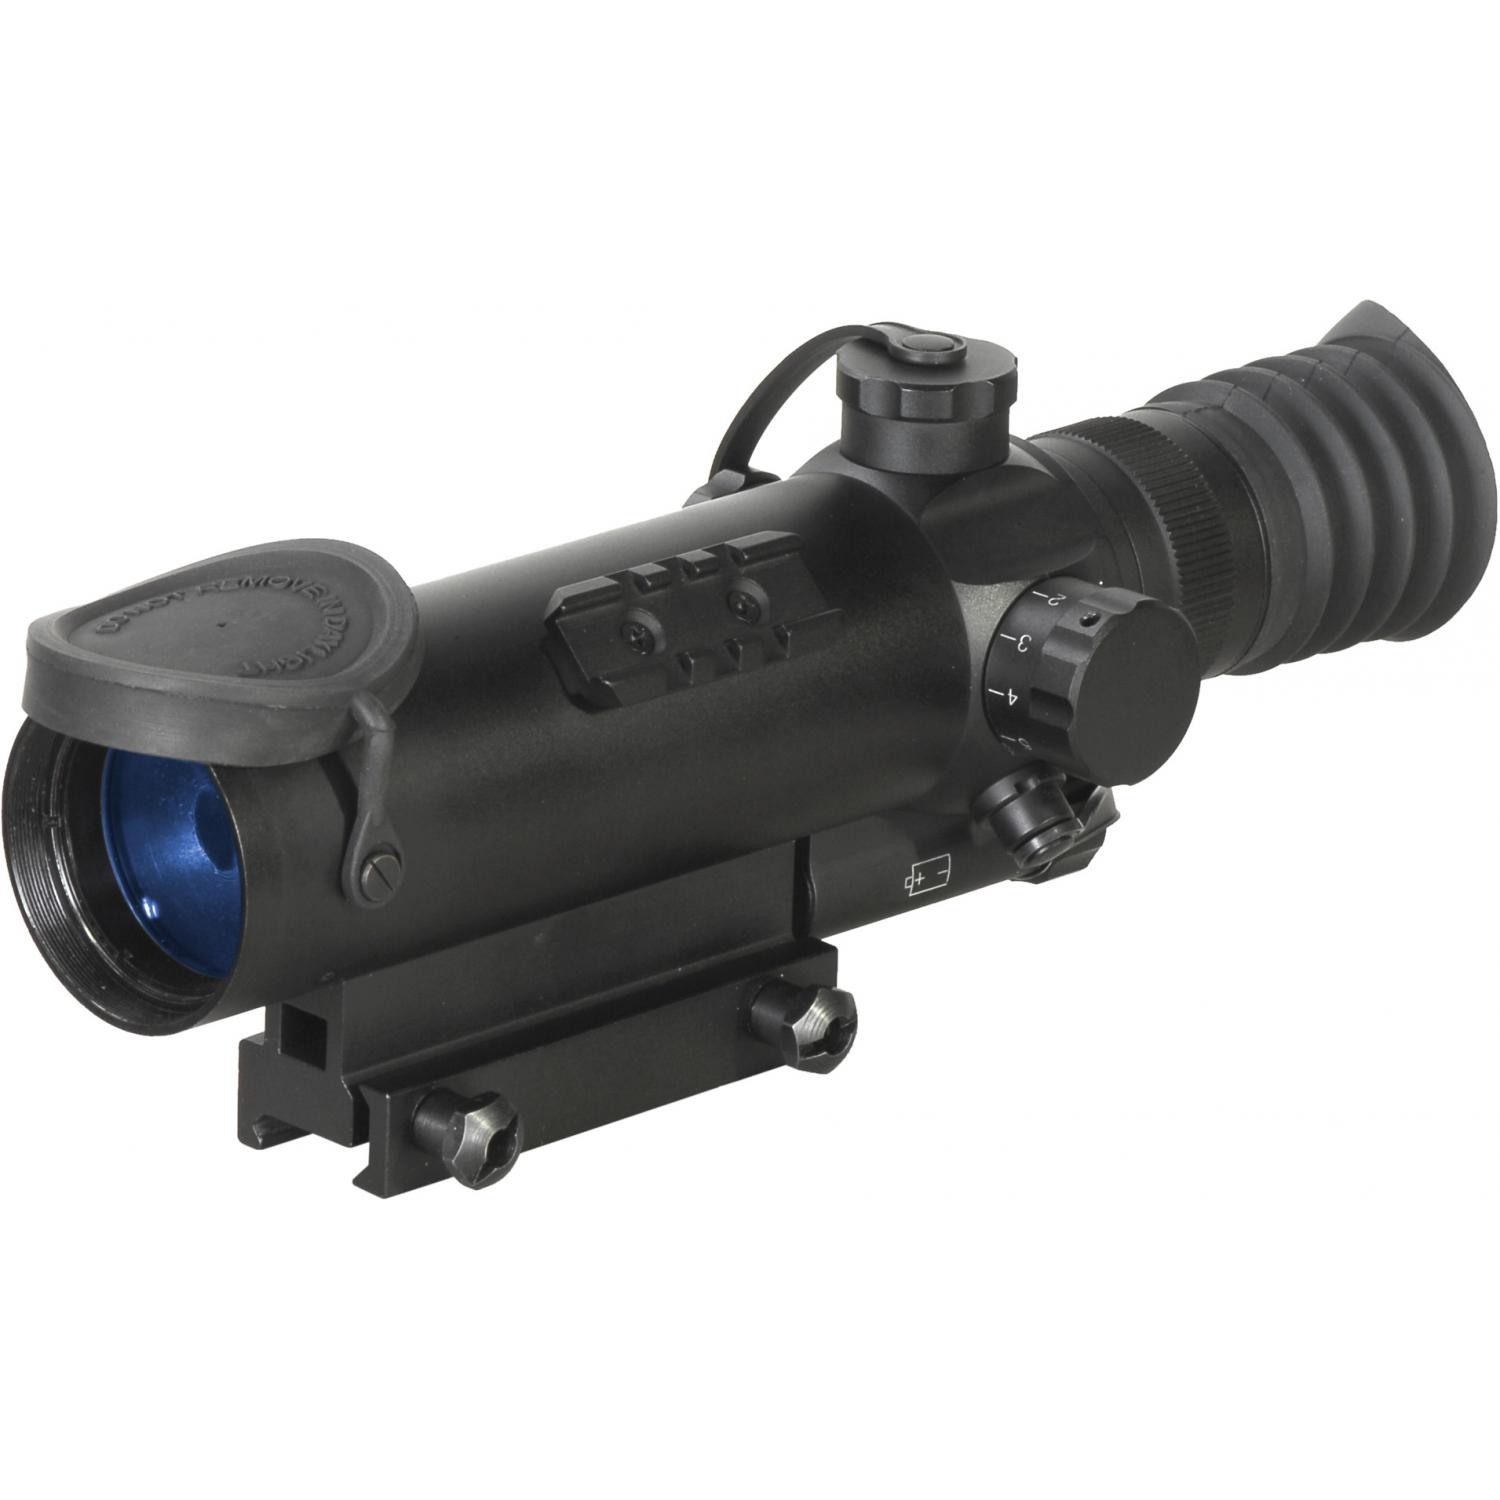 Atn Night Arrow2 Night Vision Weapon Sight With Gen 2 2x Magnification - Nvwsnar220